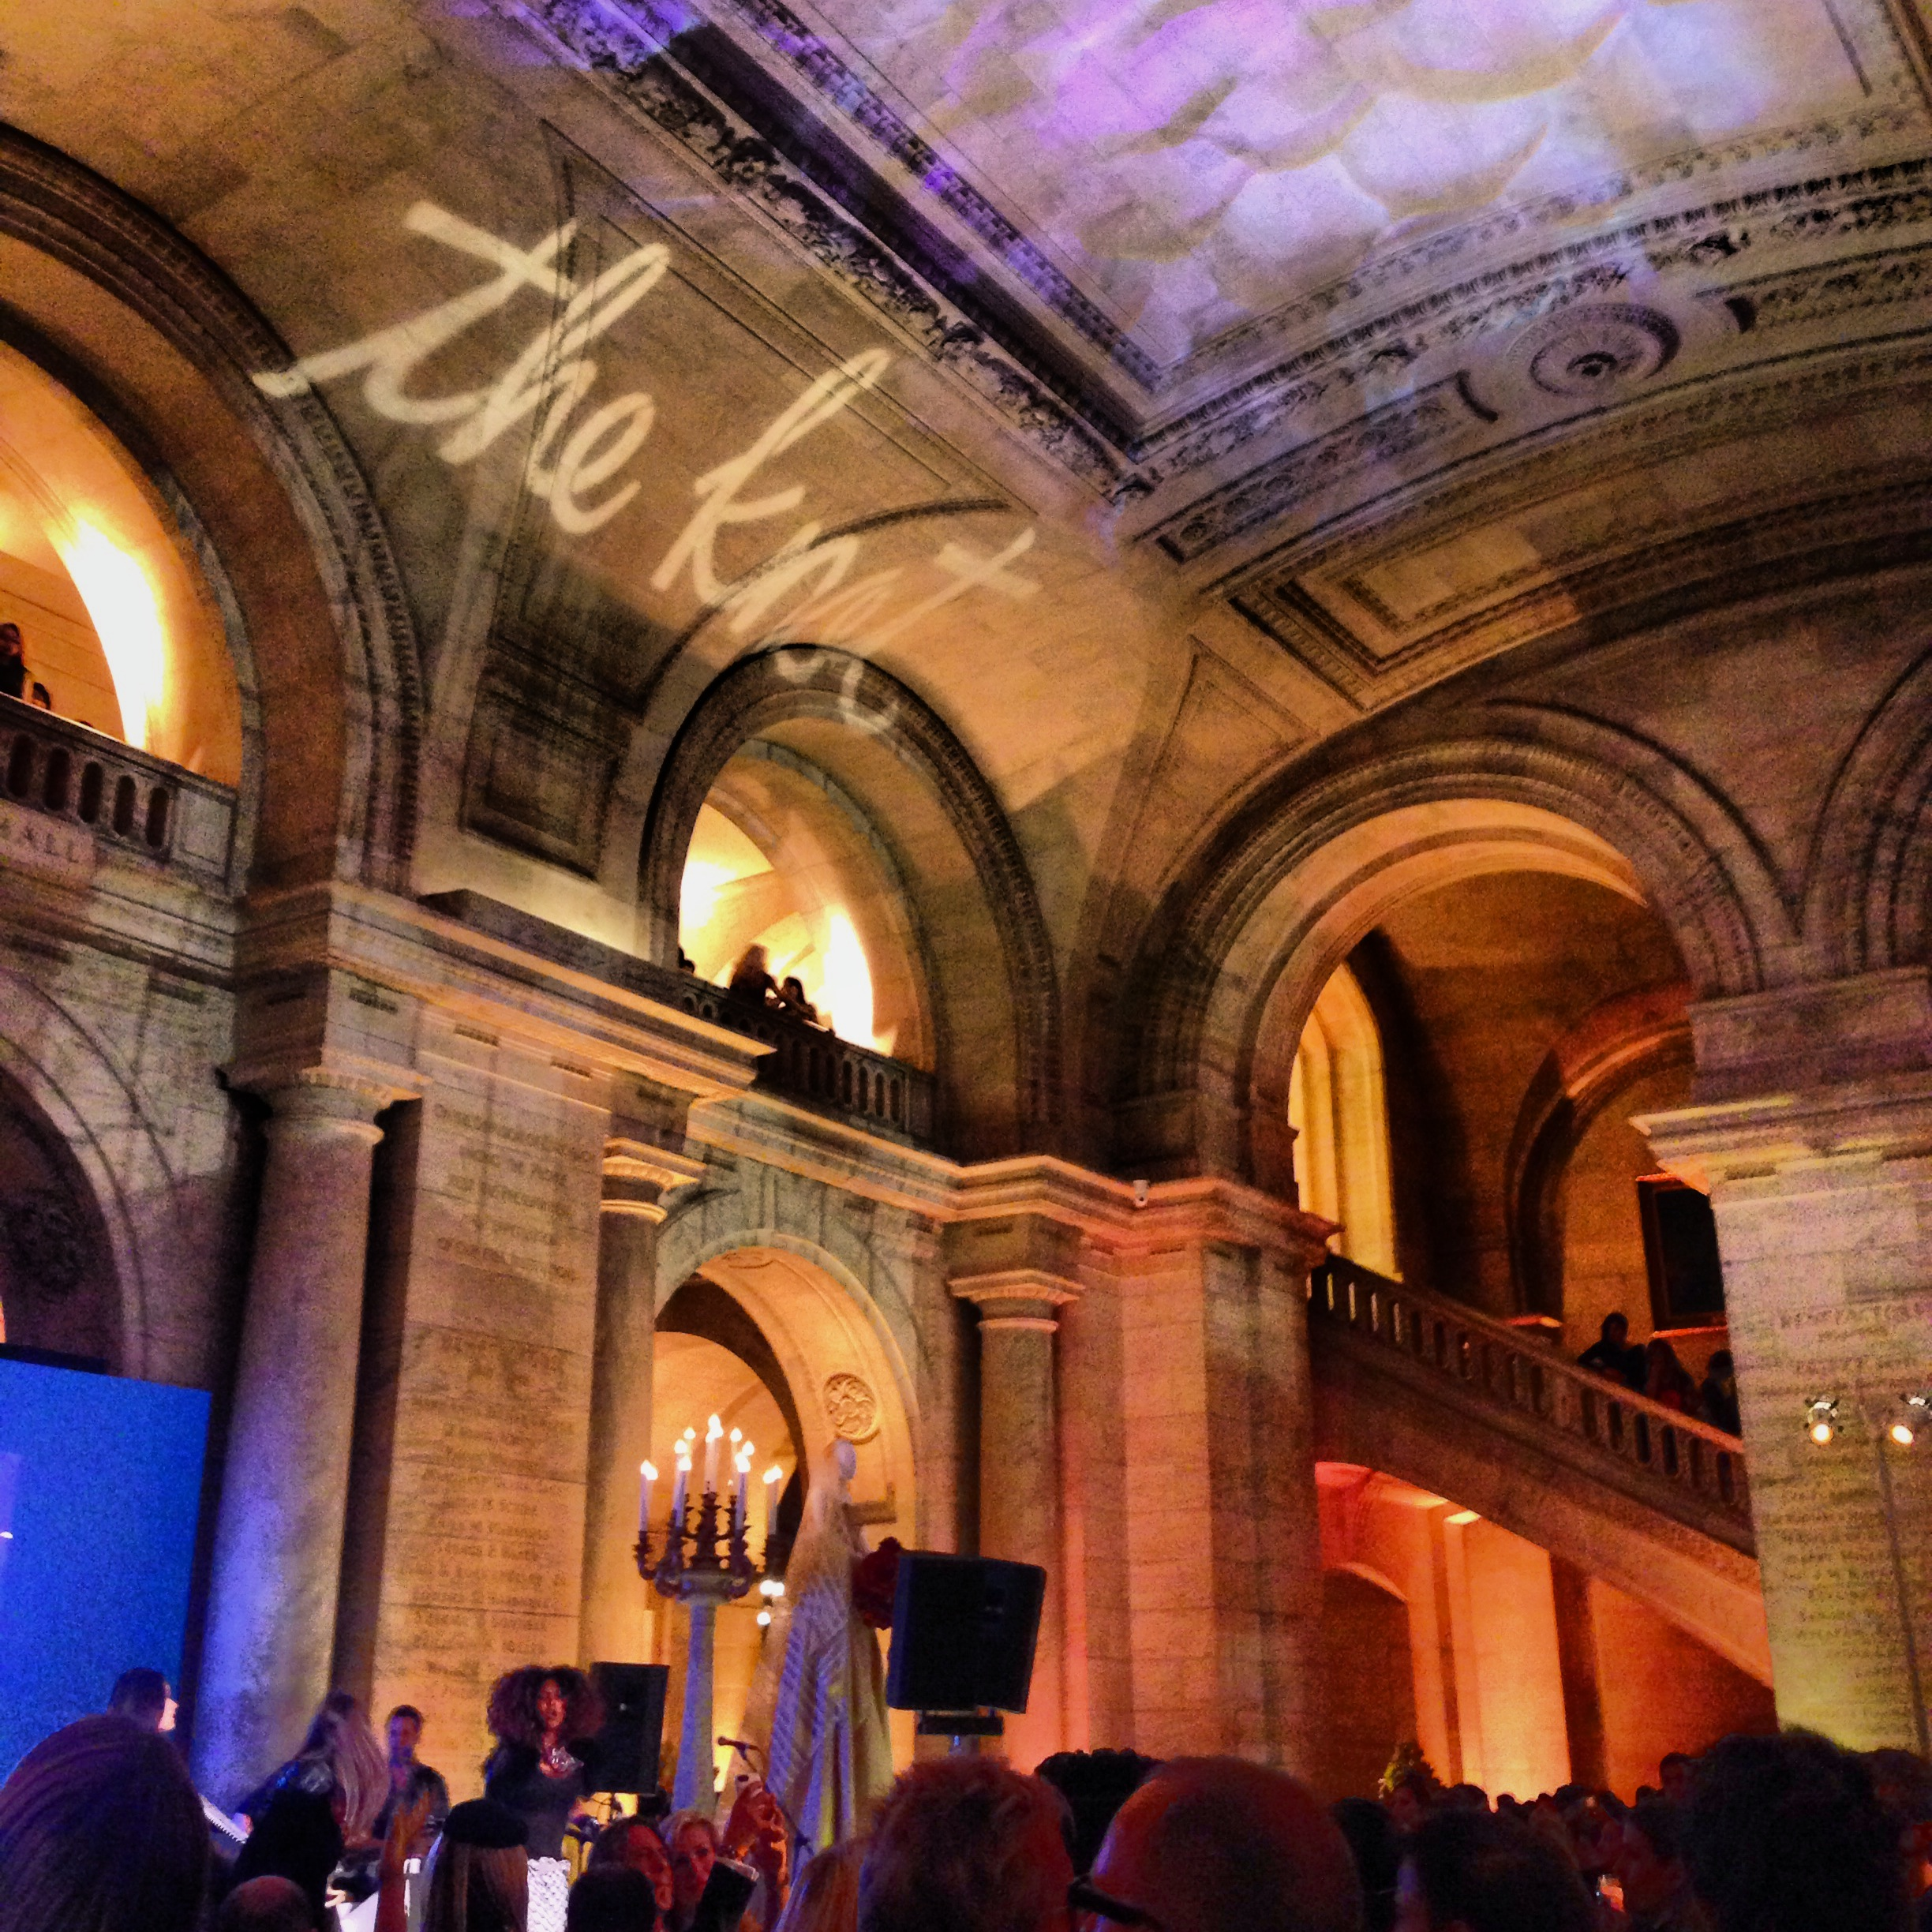 Bridal Market is always capped off by the most fabulous parties, including The Knot Gala, held annually at the spectacular New York Public Library